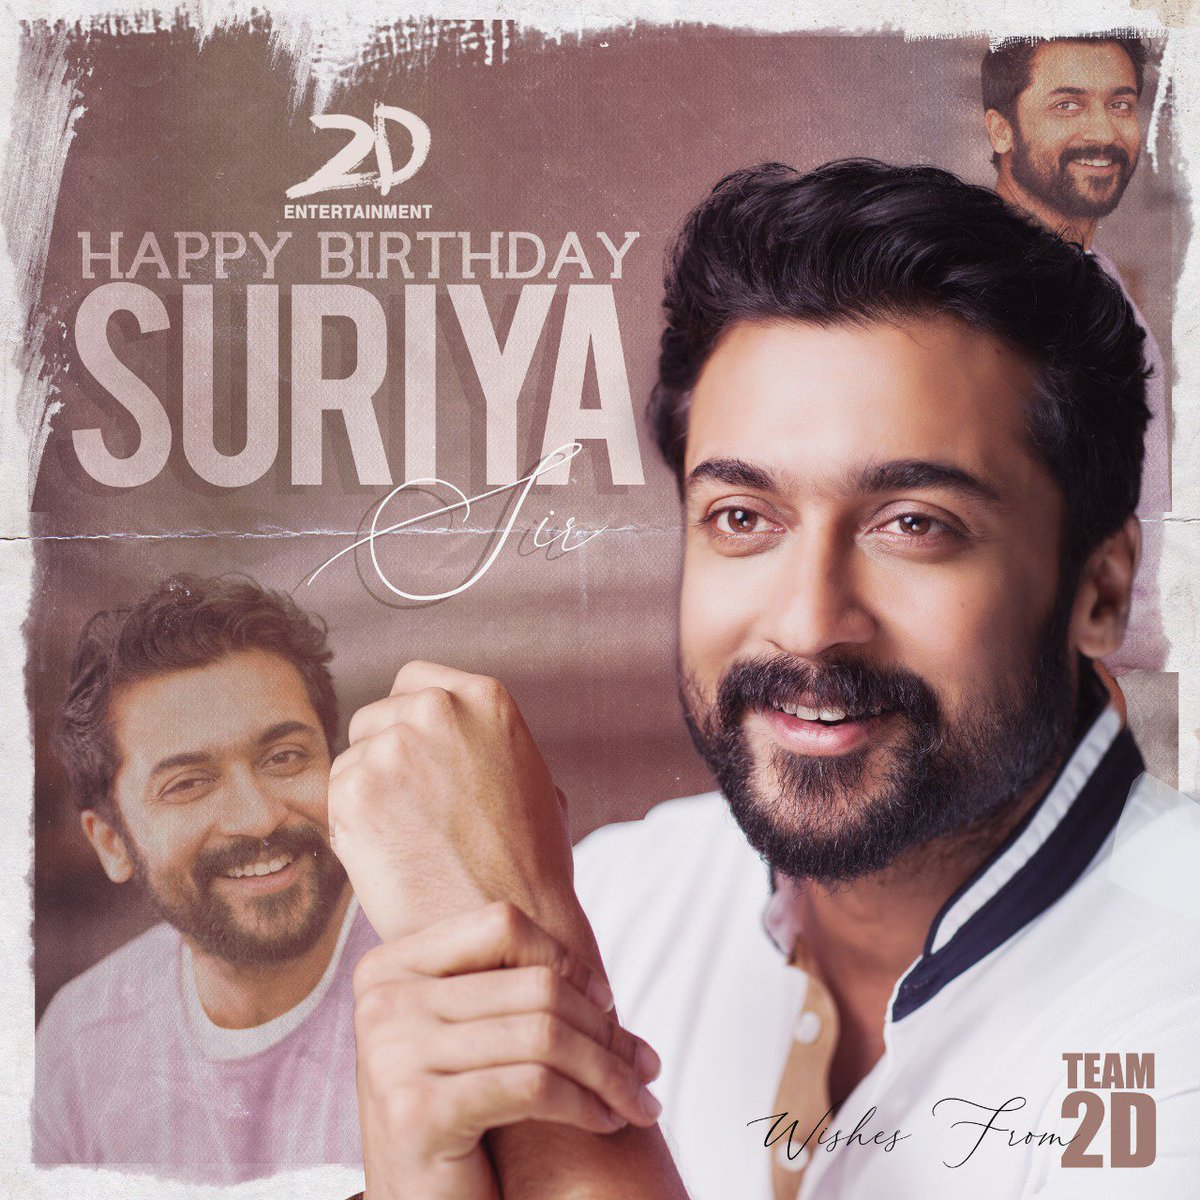 Happy Birthday to our source of strength and the most charming @Suriya_offl sir ❤ May this year bring you all success and happiness! Soar high with #SooraraiPottru 🤘🏻 #HappyBirthdaySURIYA